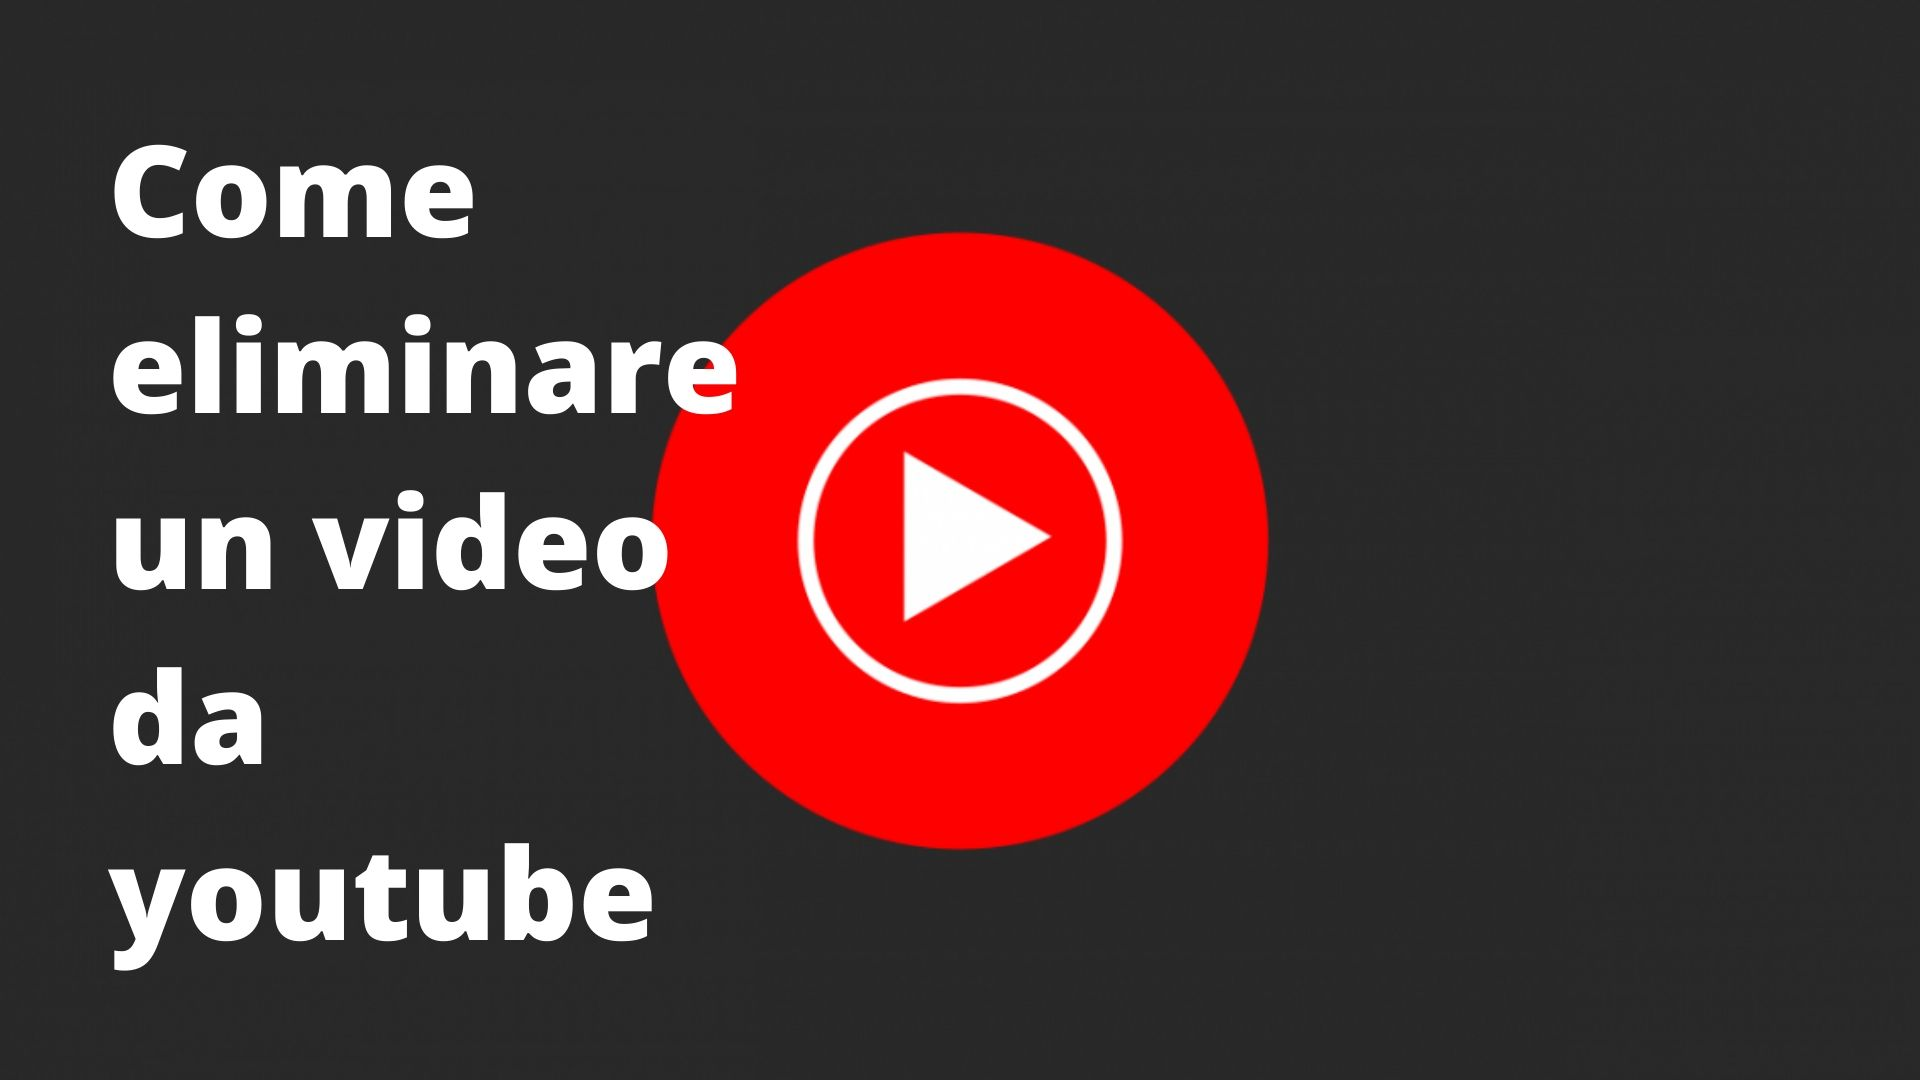 Come eliminare un video da youtube